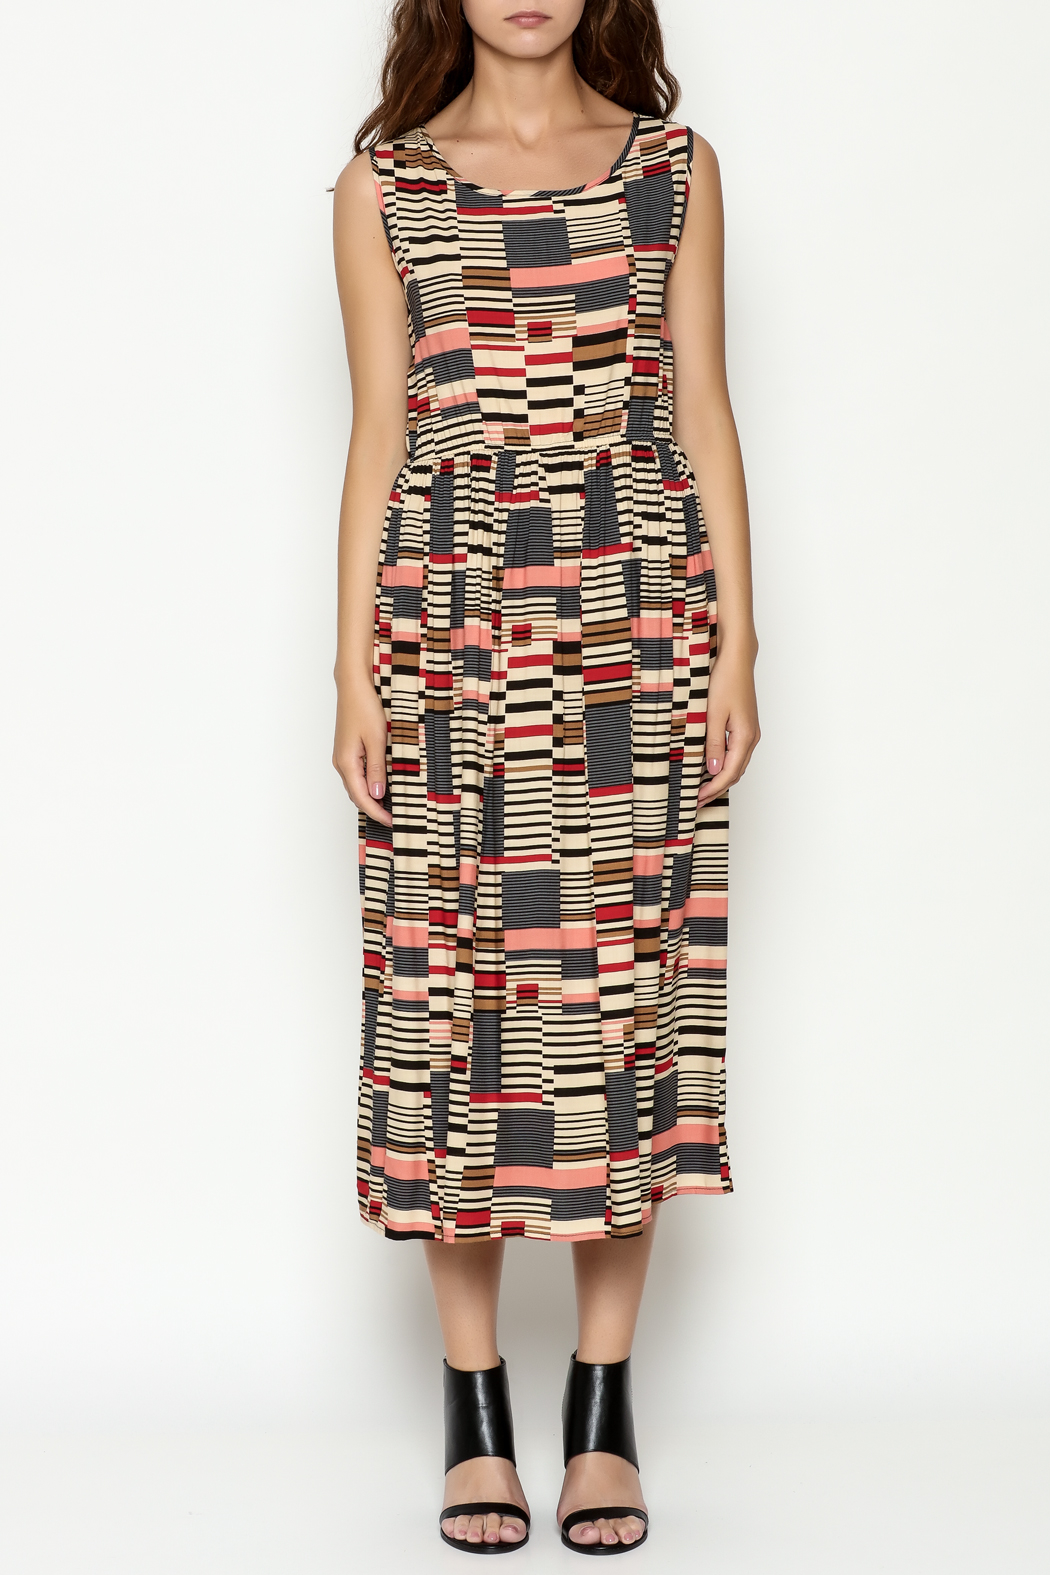 THINK CLOSET Abstract Maxi Dress - Front Full Image